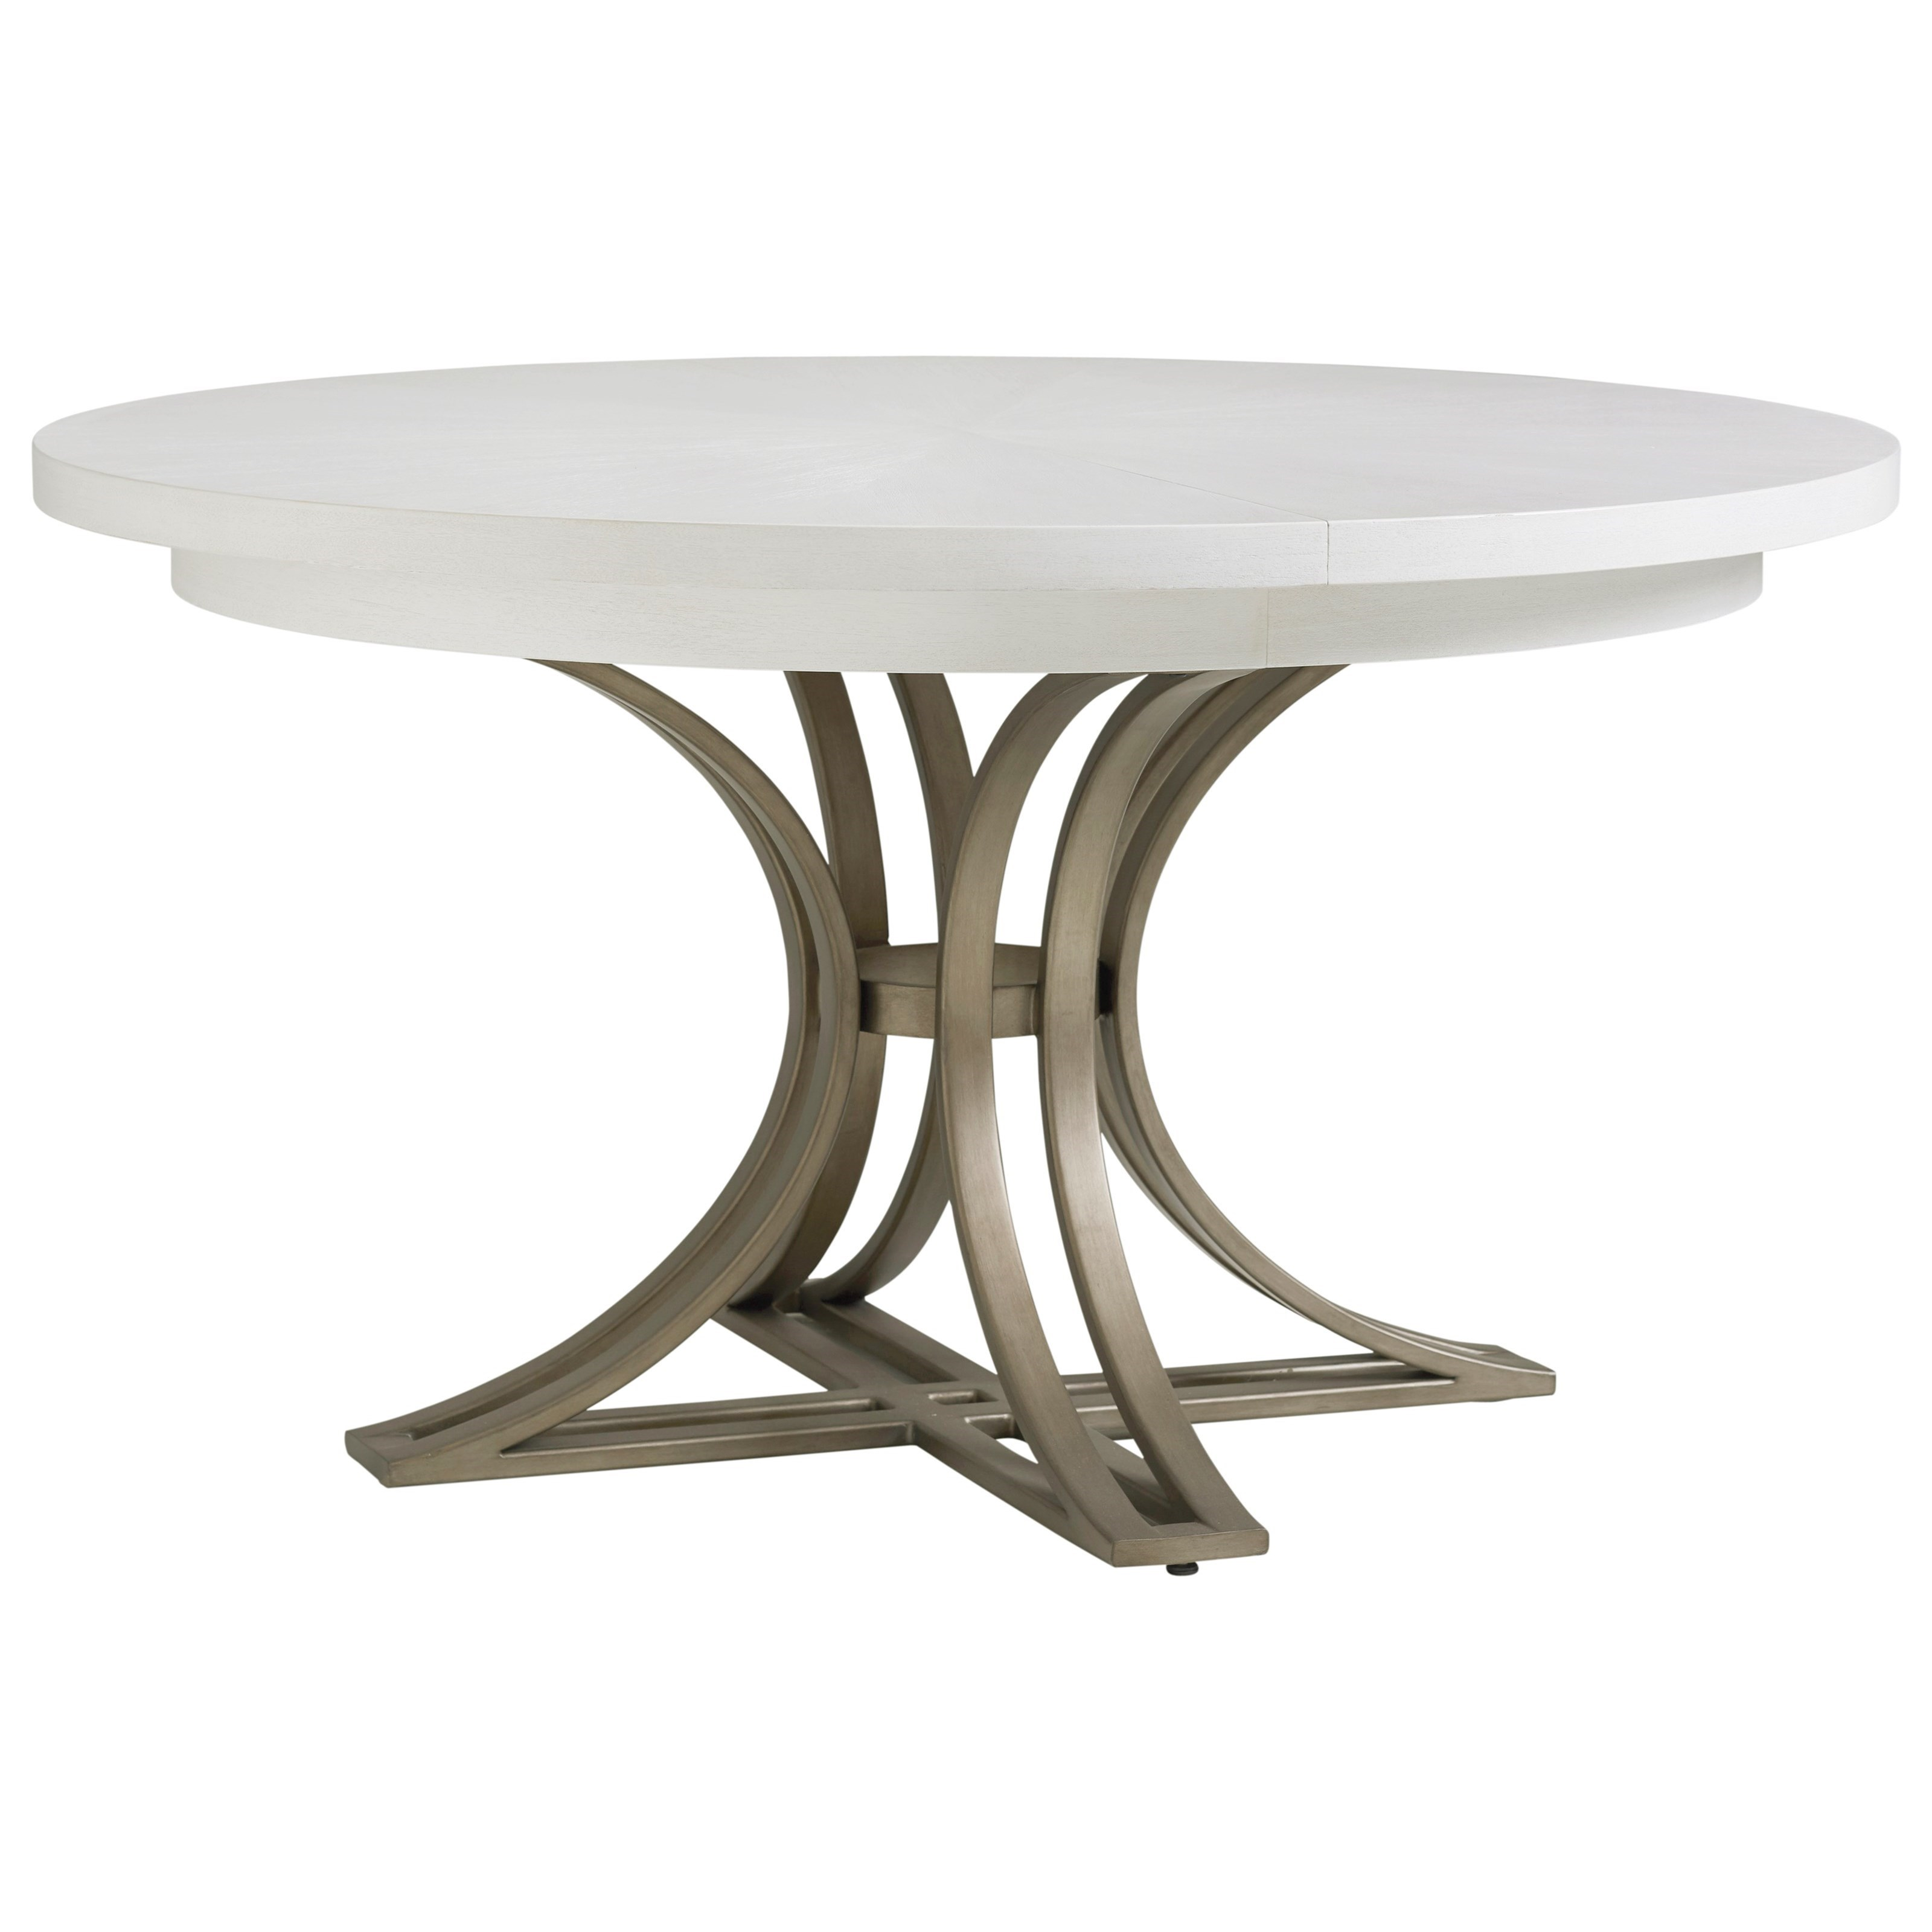 Ocean Breeze Savannah Round Dining Table by Tommy Bahama Home at Baer's Furniture